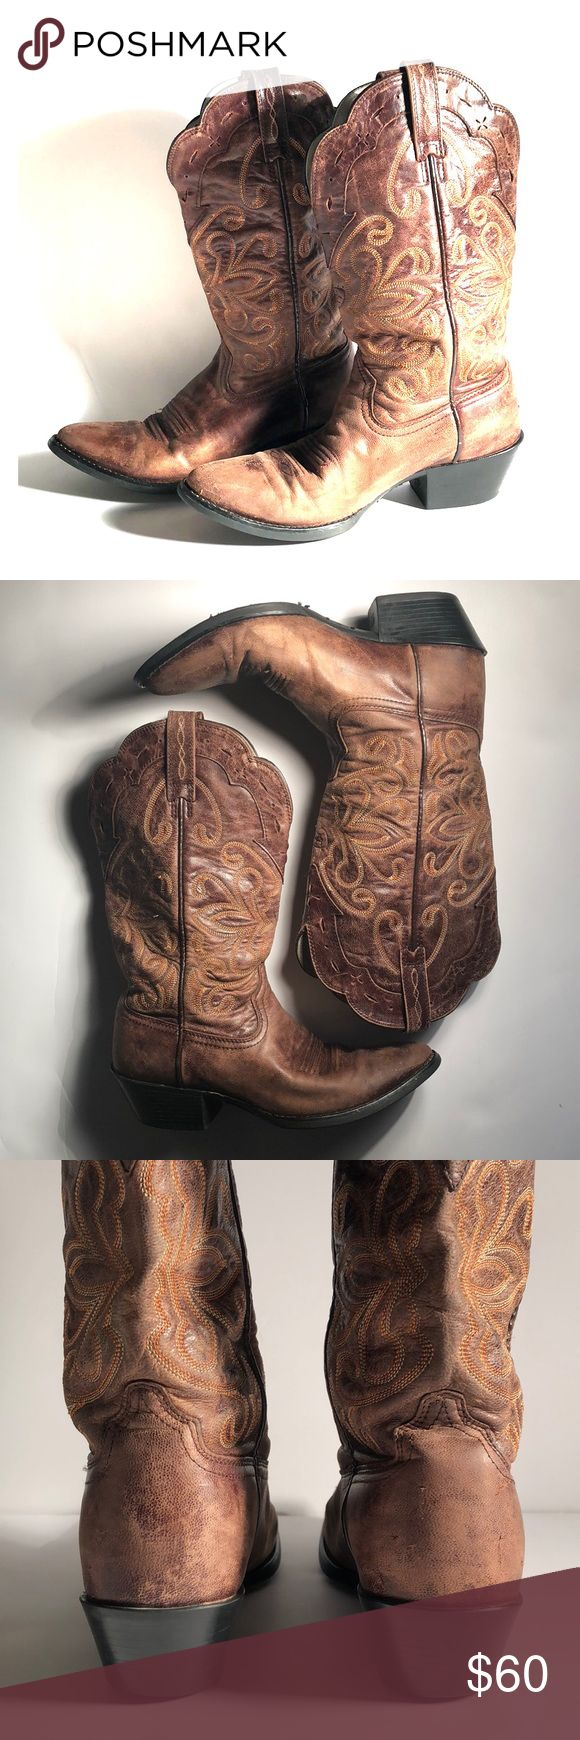 Ariat Brown Leather Western Cowboy Boots Size Women's US 6 B // EUR 36 M // UK 3.5 M - Ariat cowboy boots - Brown - Western style - Pointed round toe - Cream & orange stitching detail - Feminine floral design pattern - Black heeled soles - 100% genuine leather upper - Balance man made materials - A few scuff marks on toes - Soles have minimal signs of wear - Lots of life left - Overall in Great condition - Heel height: 1.5 in // Shaft height: 10.5 in // Total height: 12 in // Outsole (toe to…